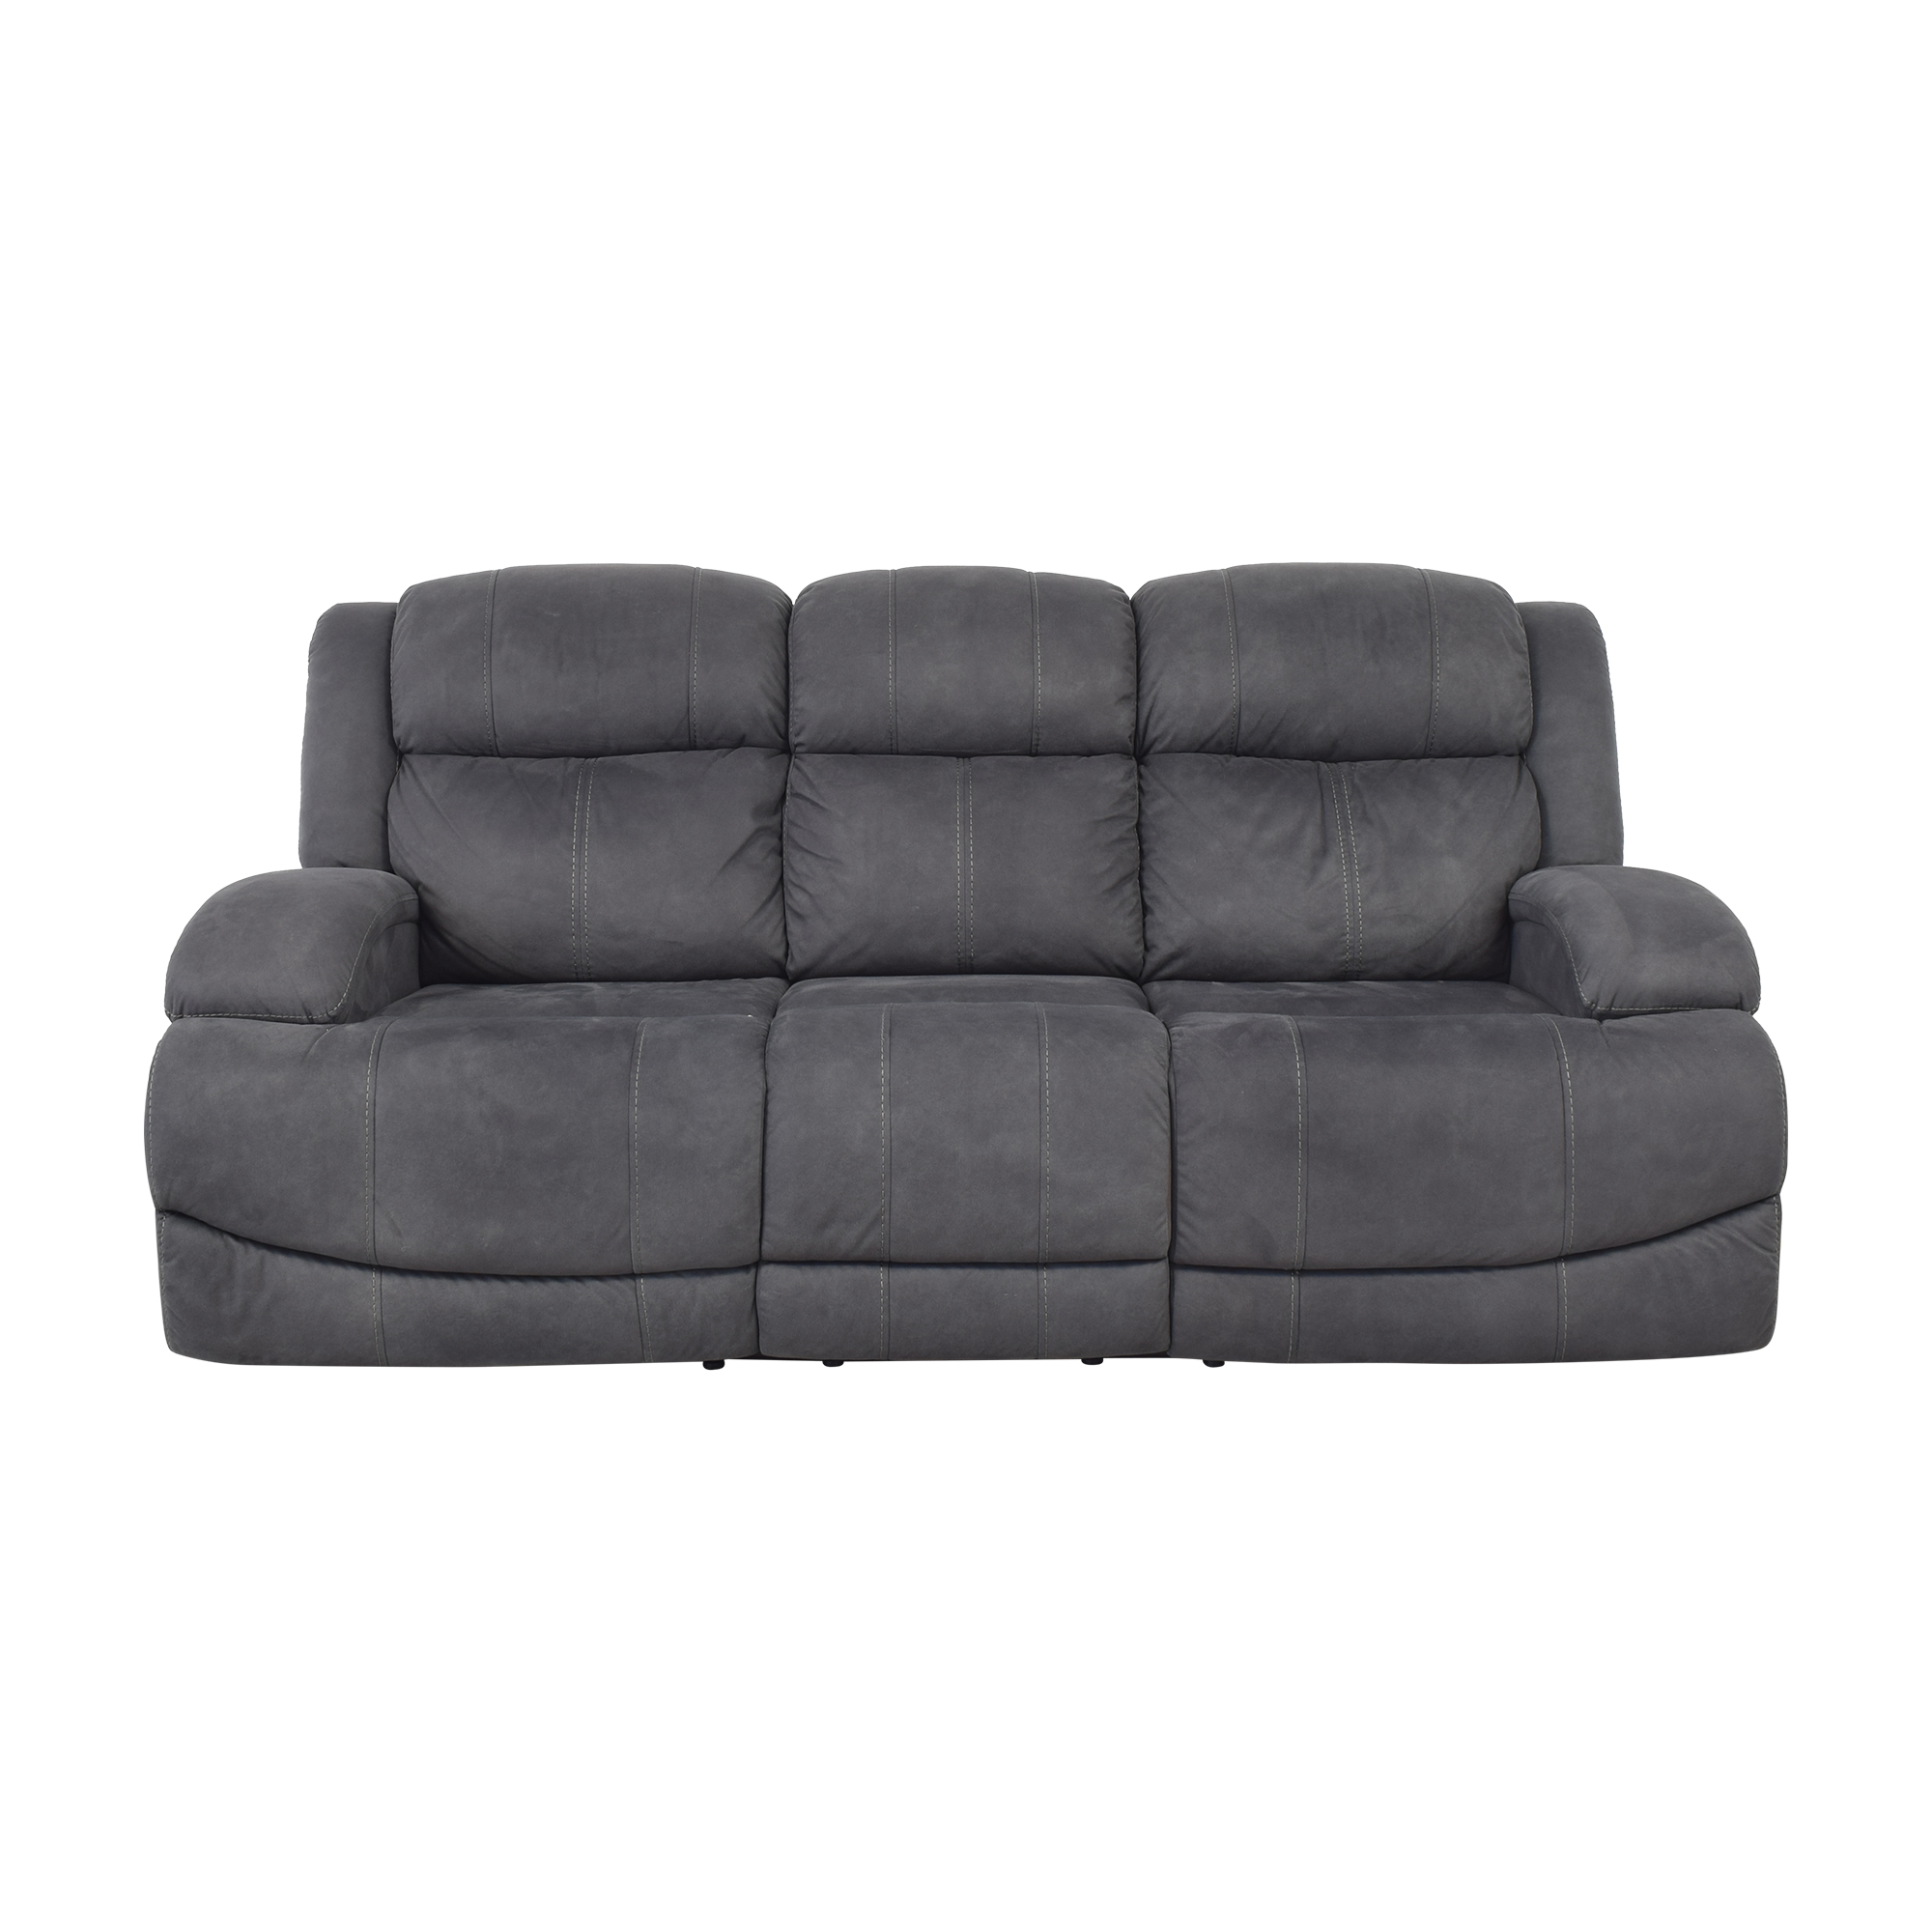 buy Raymour & Flanigan Quincey Power Reclining Sofa Raymour & Flanigan Classic Sofas